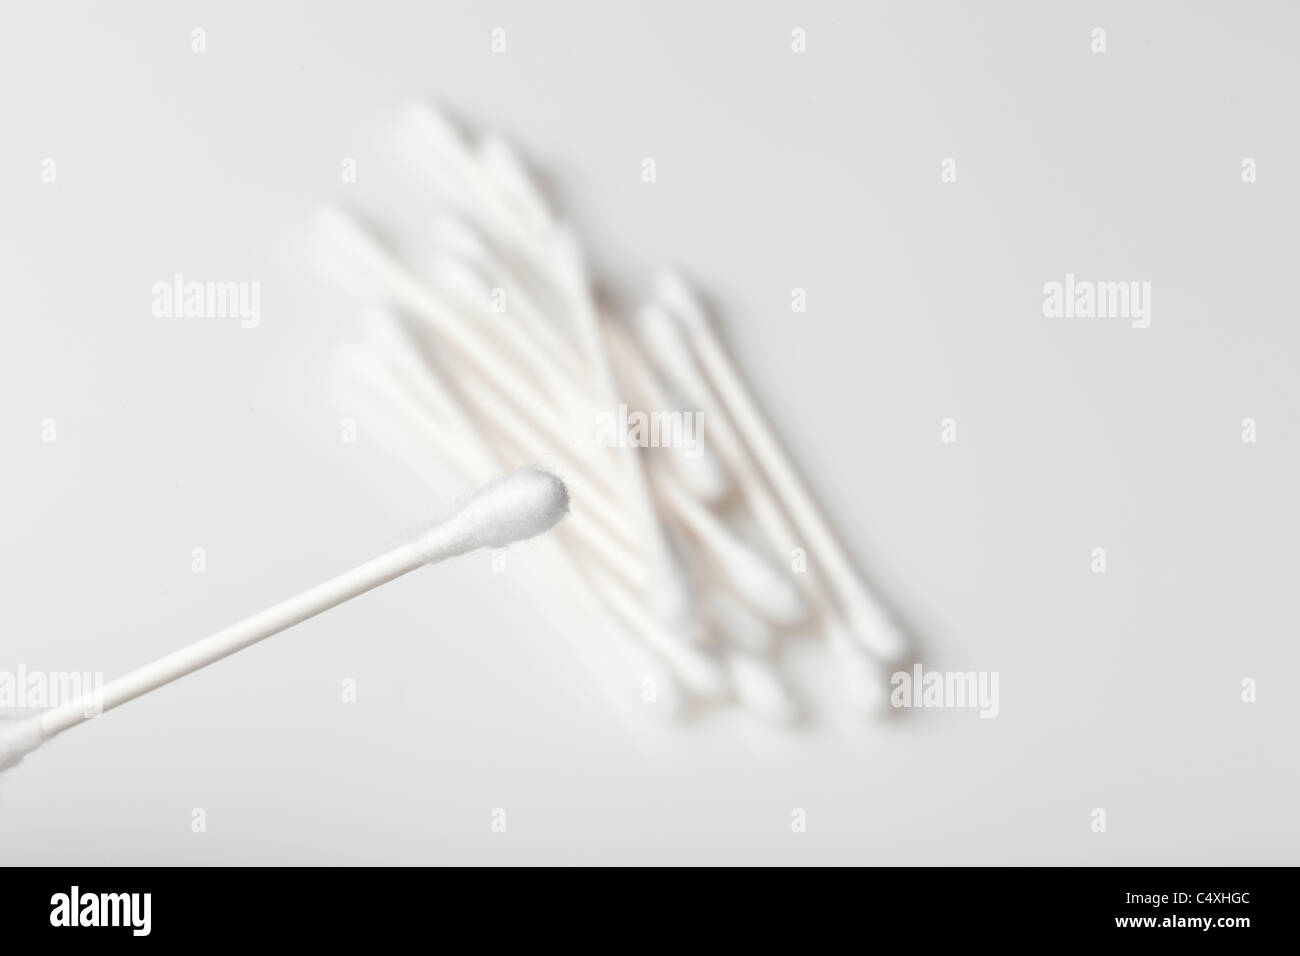 A group of cotton swabs against a white background - Stock Image